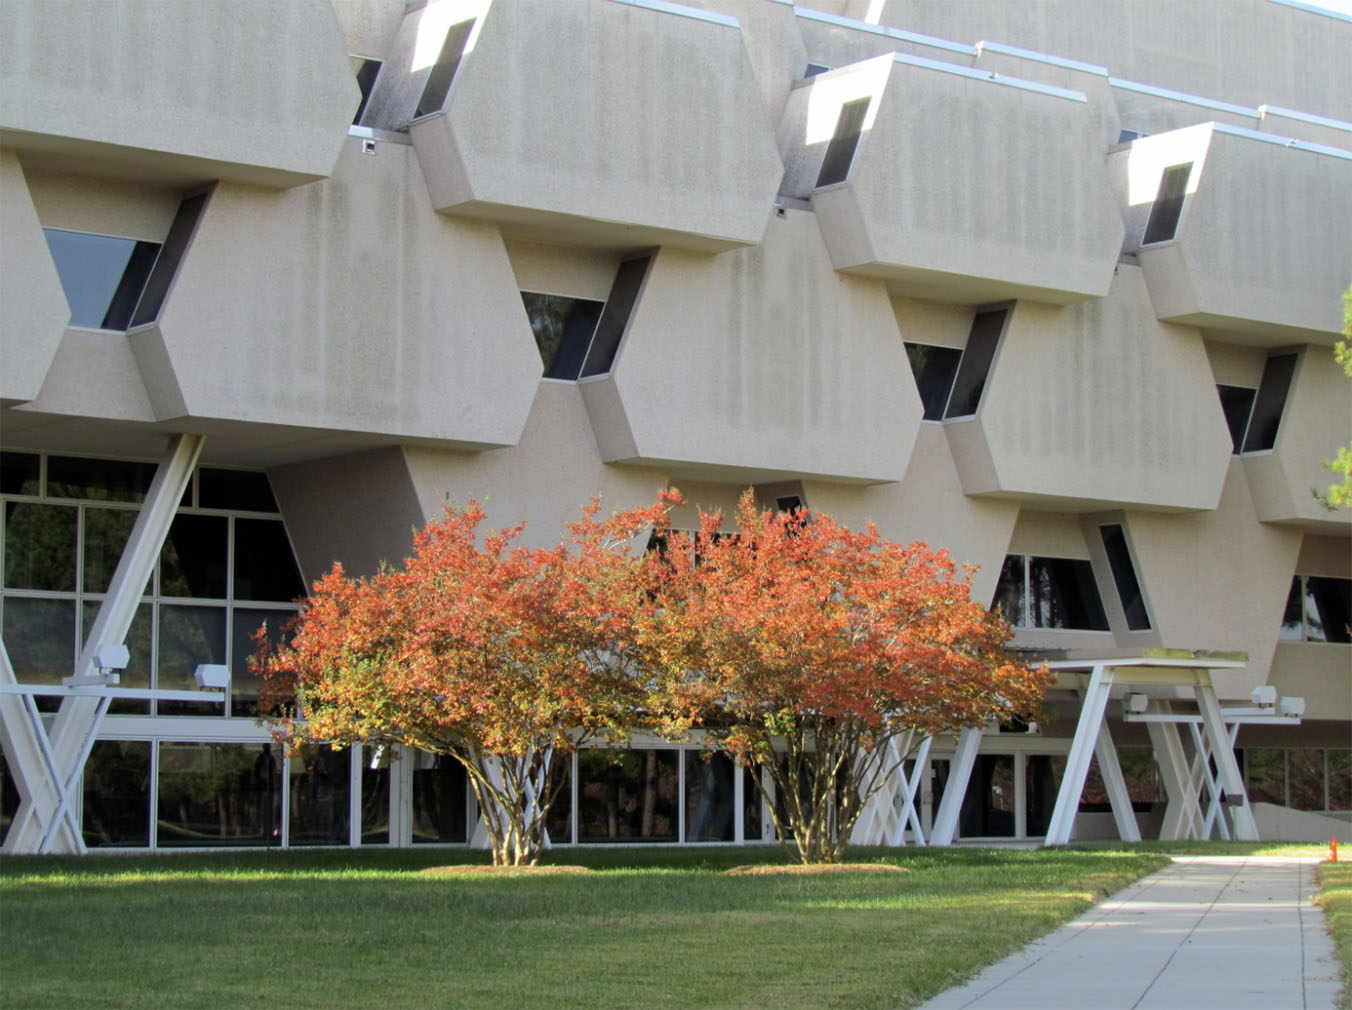 Burroughs Wellcome building designed by Paul Rudolph is now facing demolition